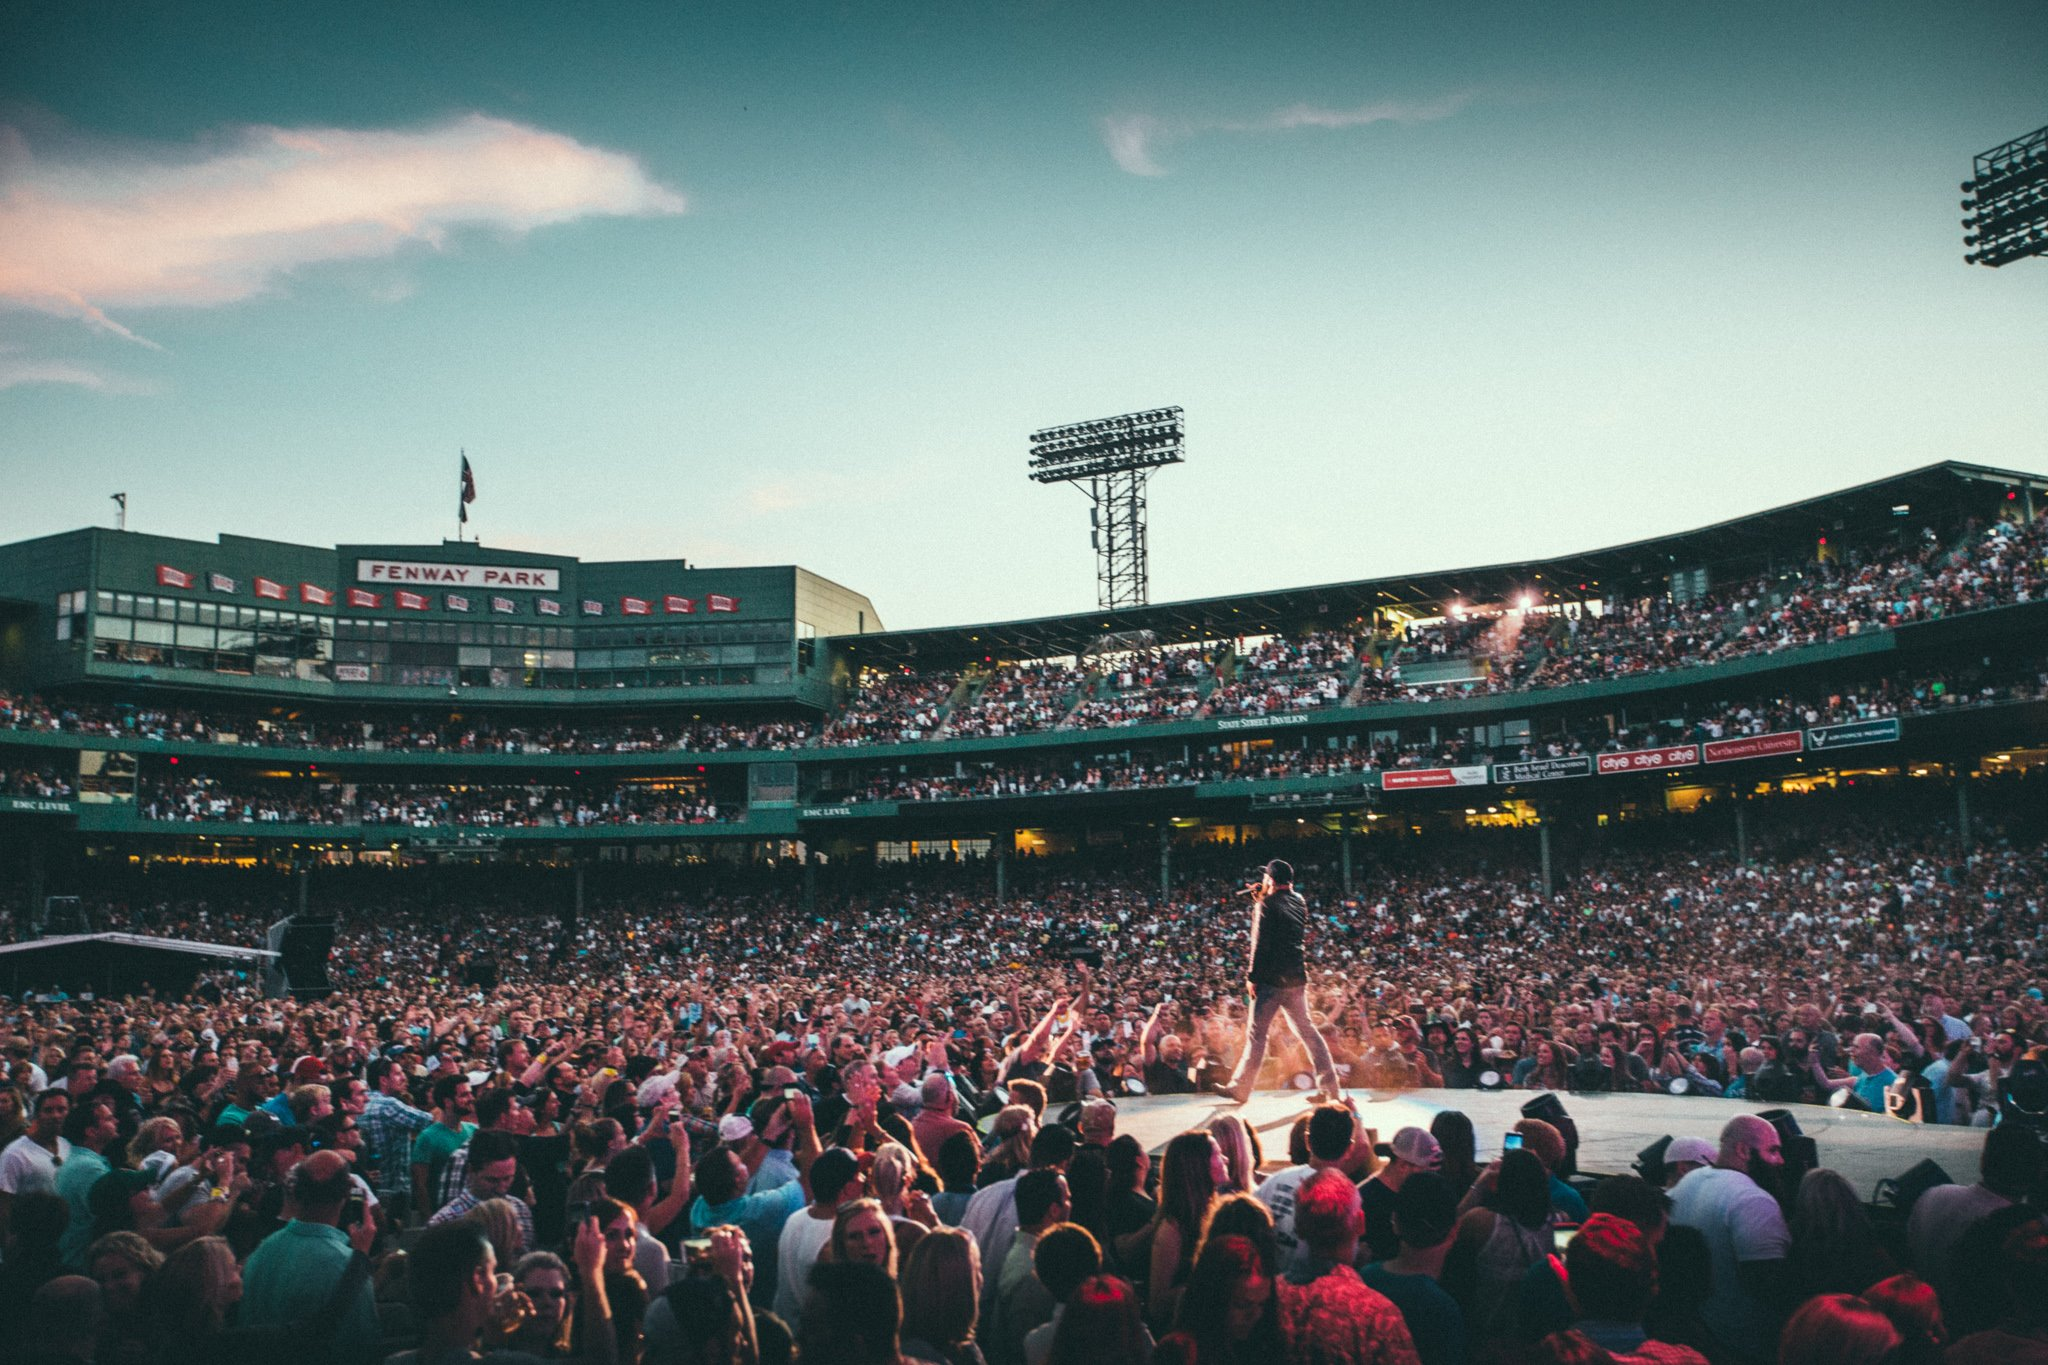 Zac Brown Band at Fenway Park